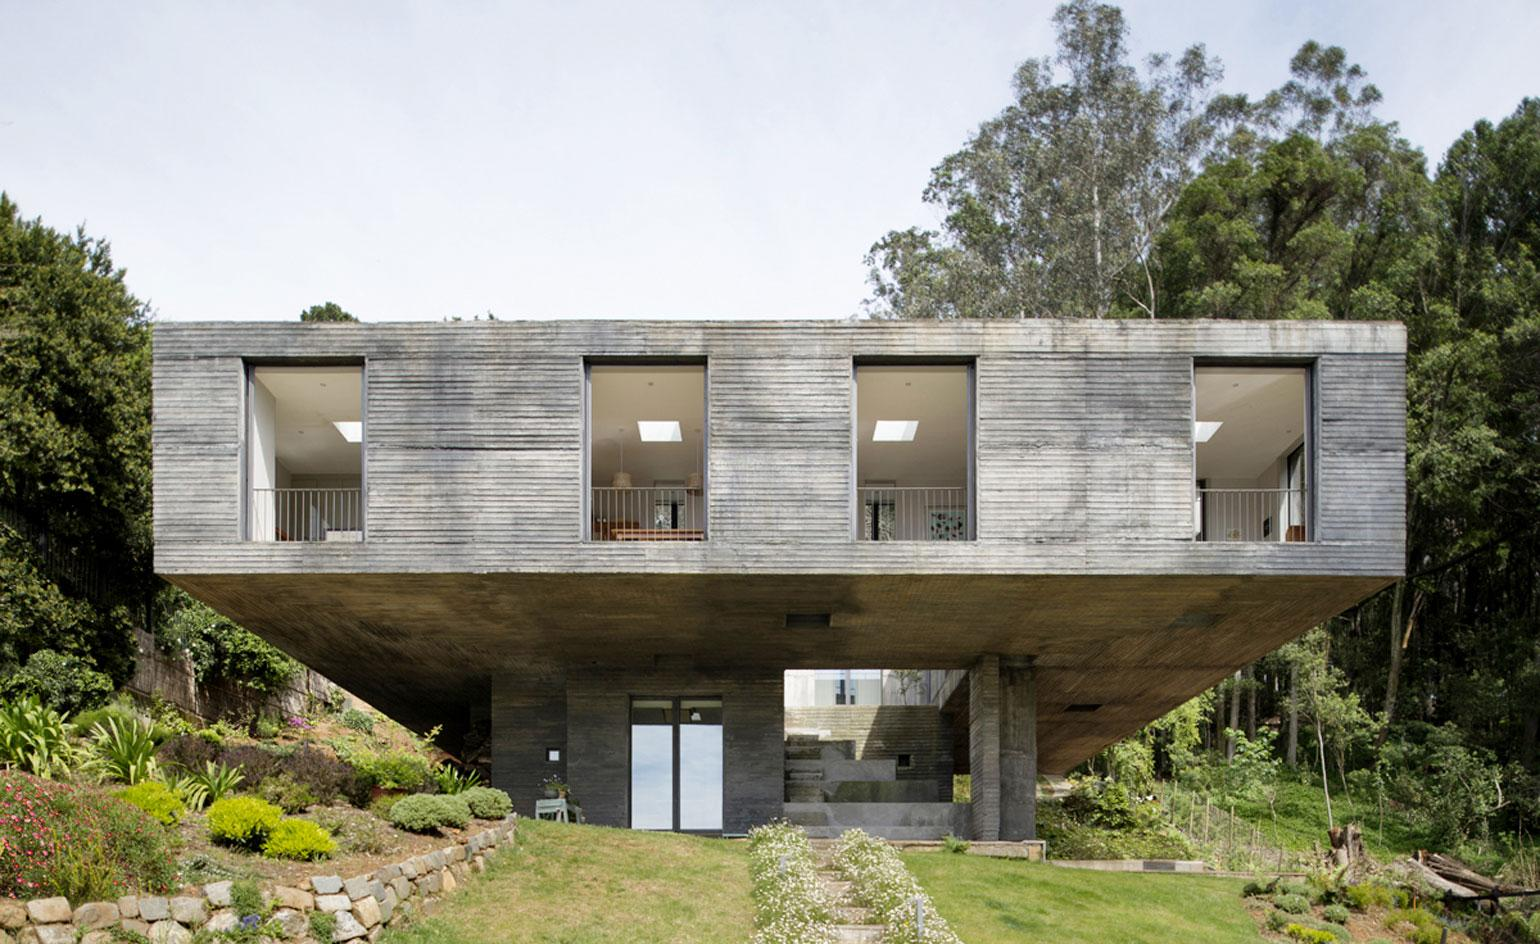 Pezo von Ellrichshausen's Guna House stakes a fearless claim on one of Chile's leafy lagoons